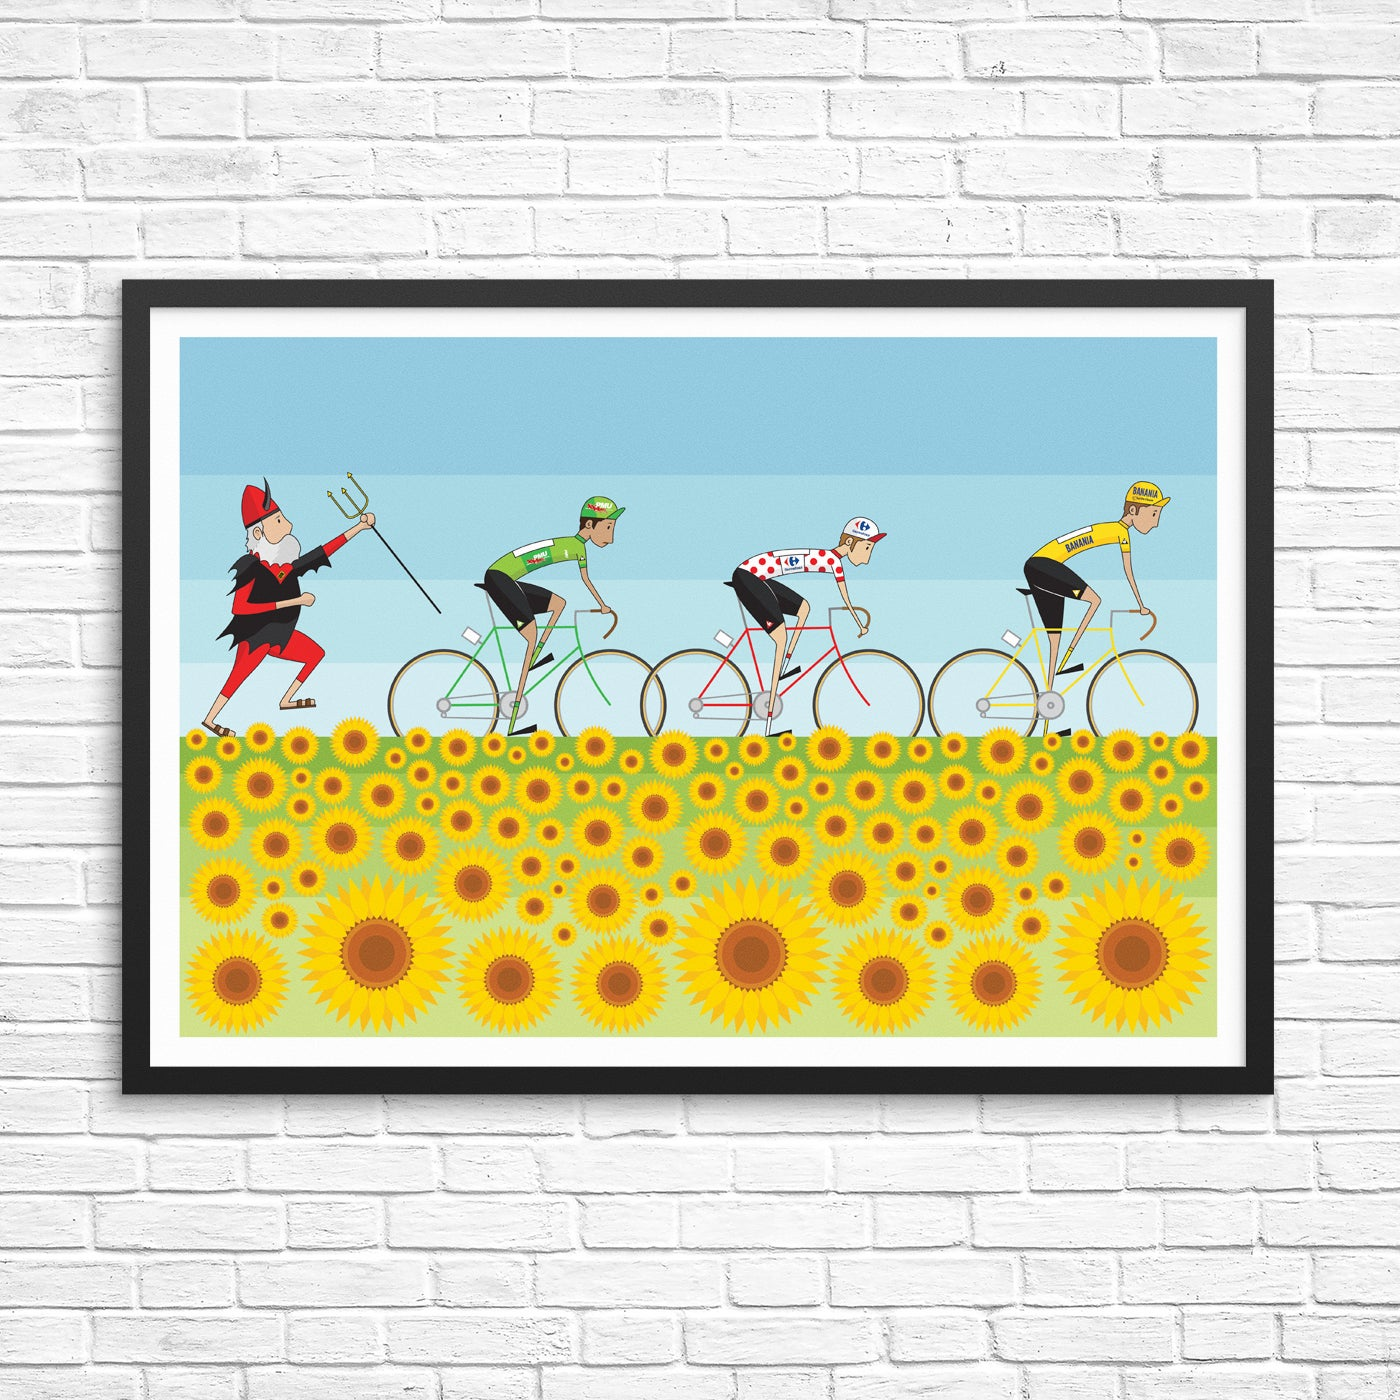 Permalink to Tour De France Art